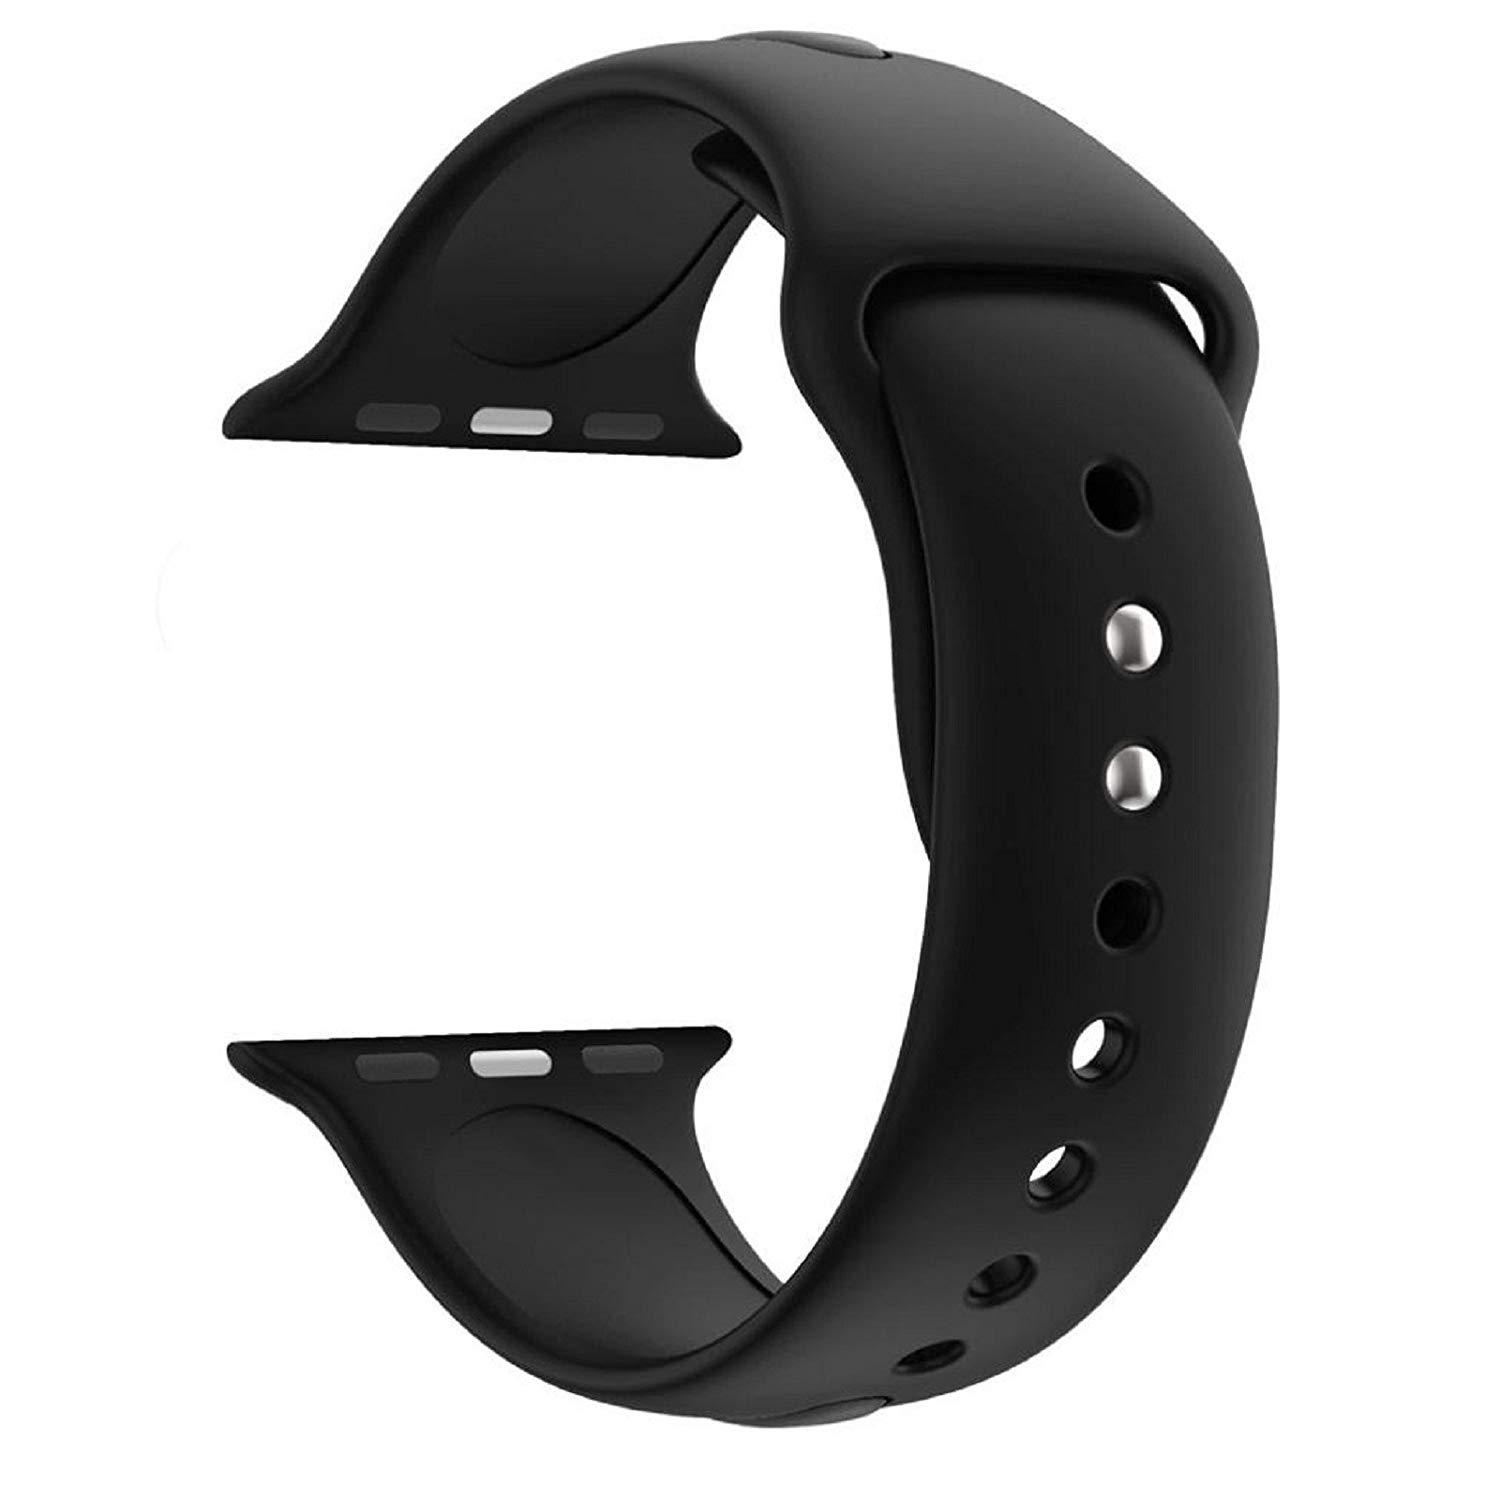 Owill Fashion Sports Soft Silicone Replacement Sports Band Watch Strap For Apple Watch Series 3 42MM, Wrist Circumference: 140MM-185MM (Black)